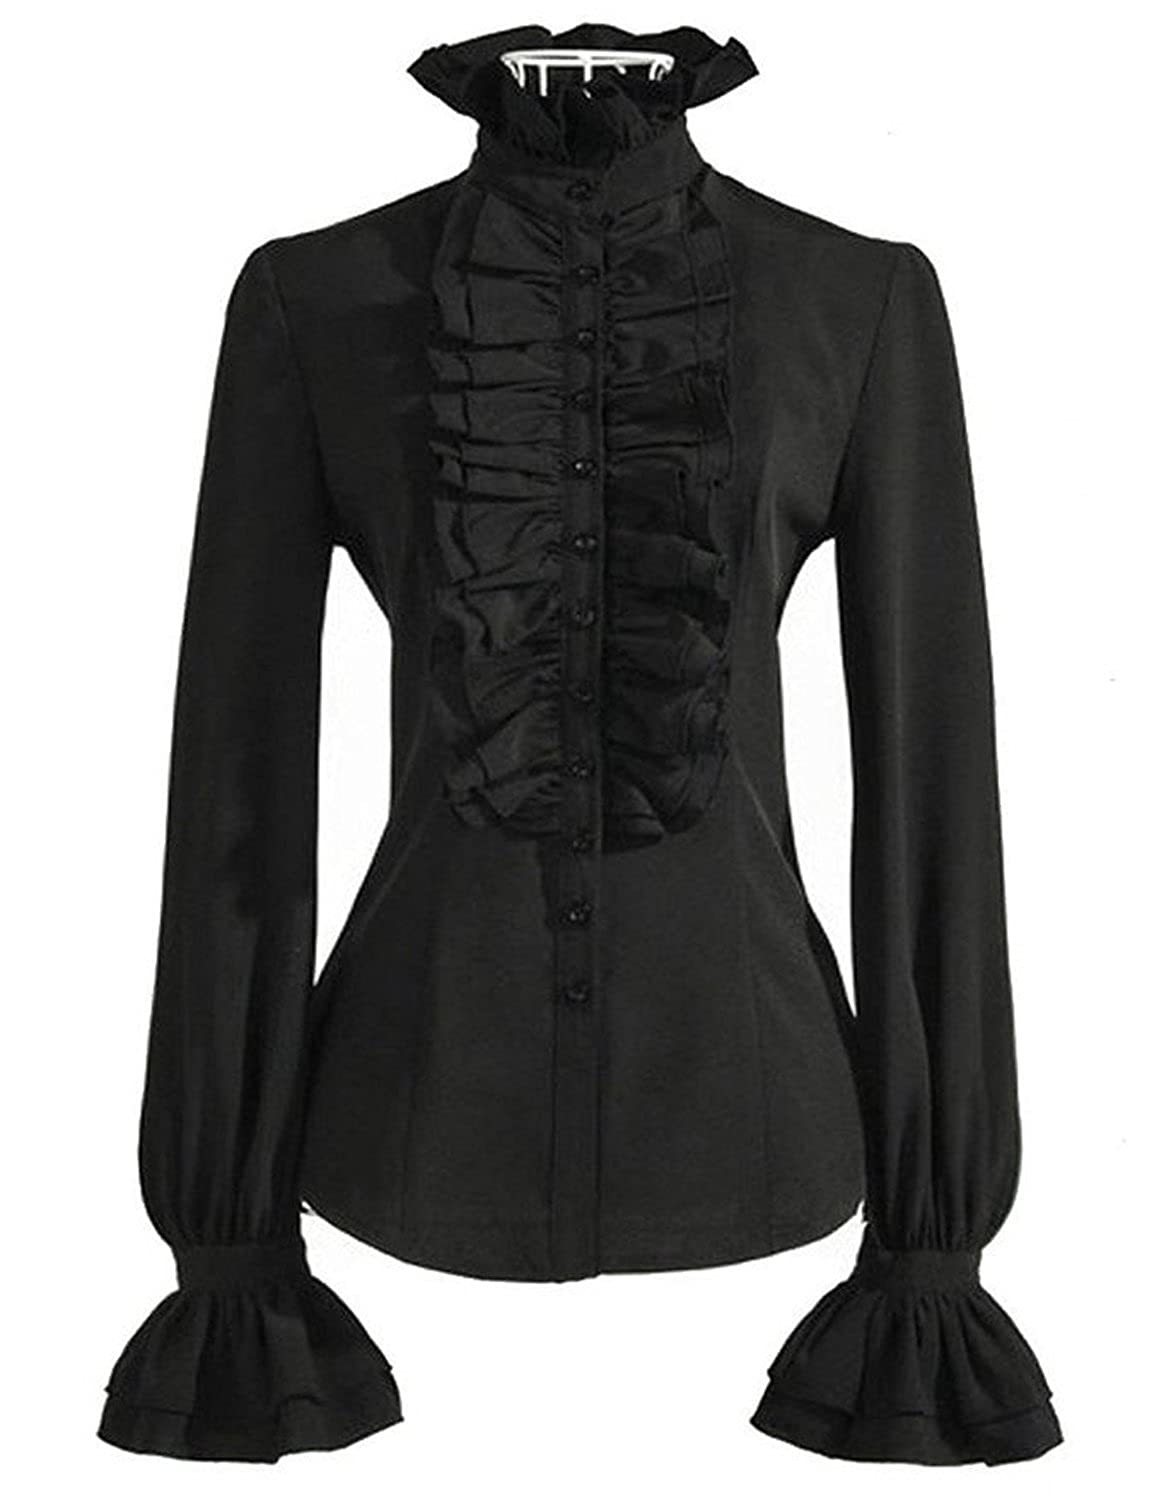 Make an Easy Victorian Costume Dress with a Skirt and Blouse Stand-Up Collar Lotus Ruffle Shirts Blouse $21.99 AT vintagedancer.com